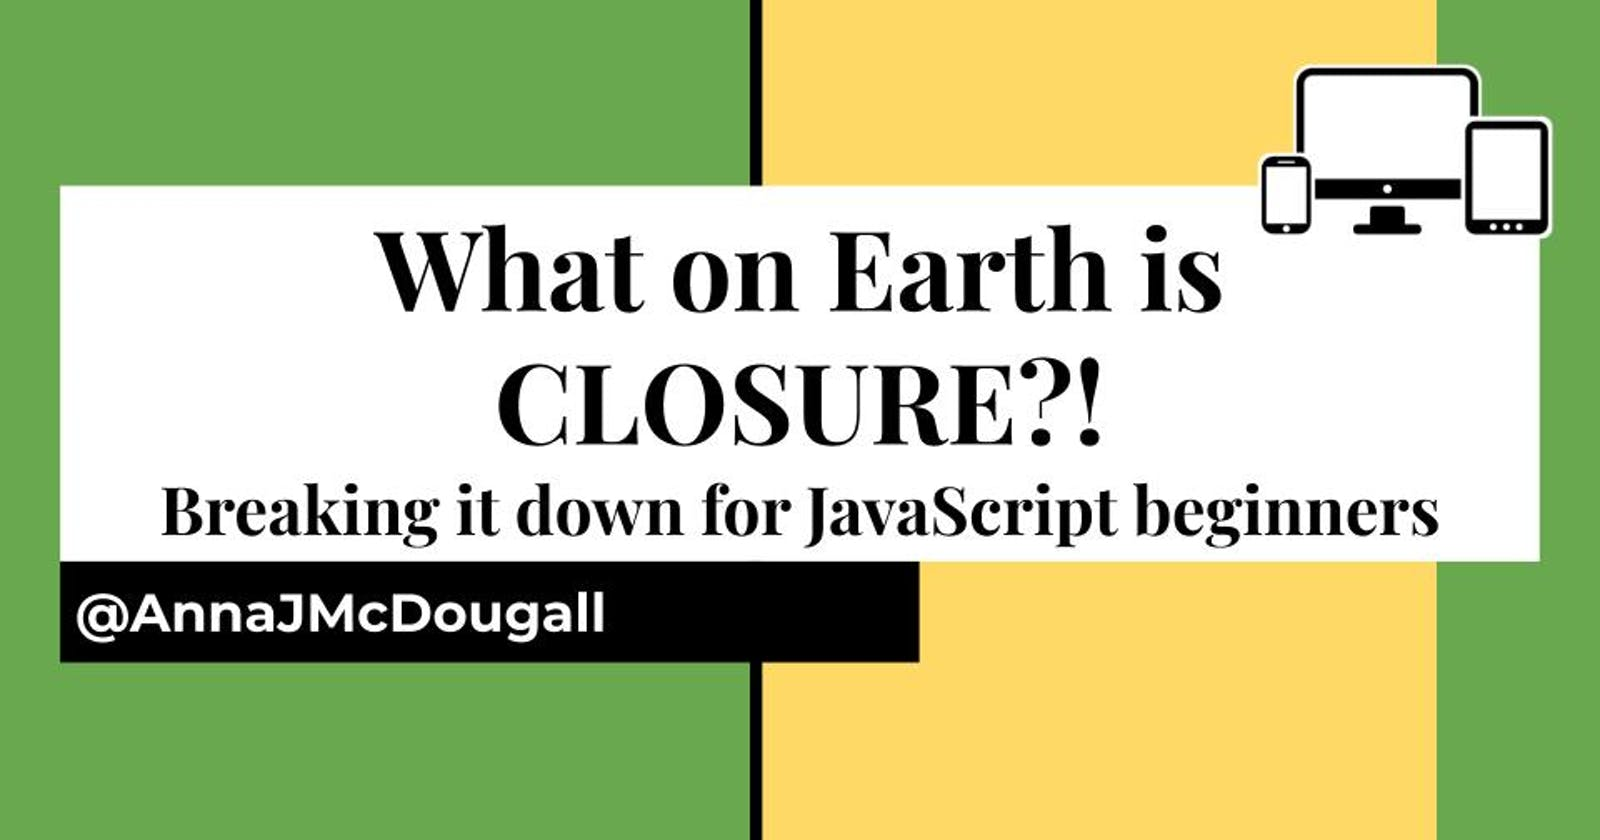 Seriously though, WHAT ON EARTH is closure?!